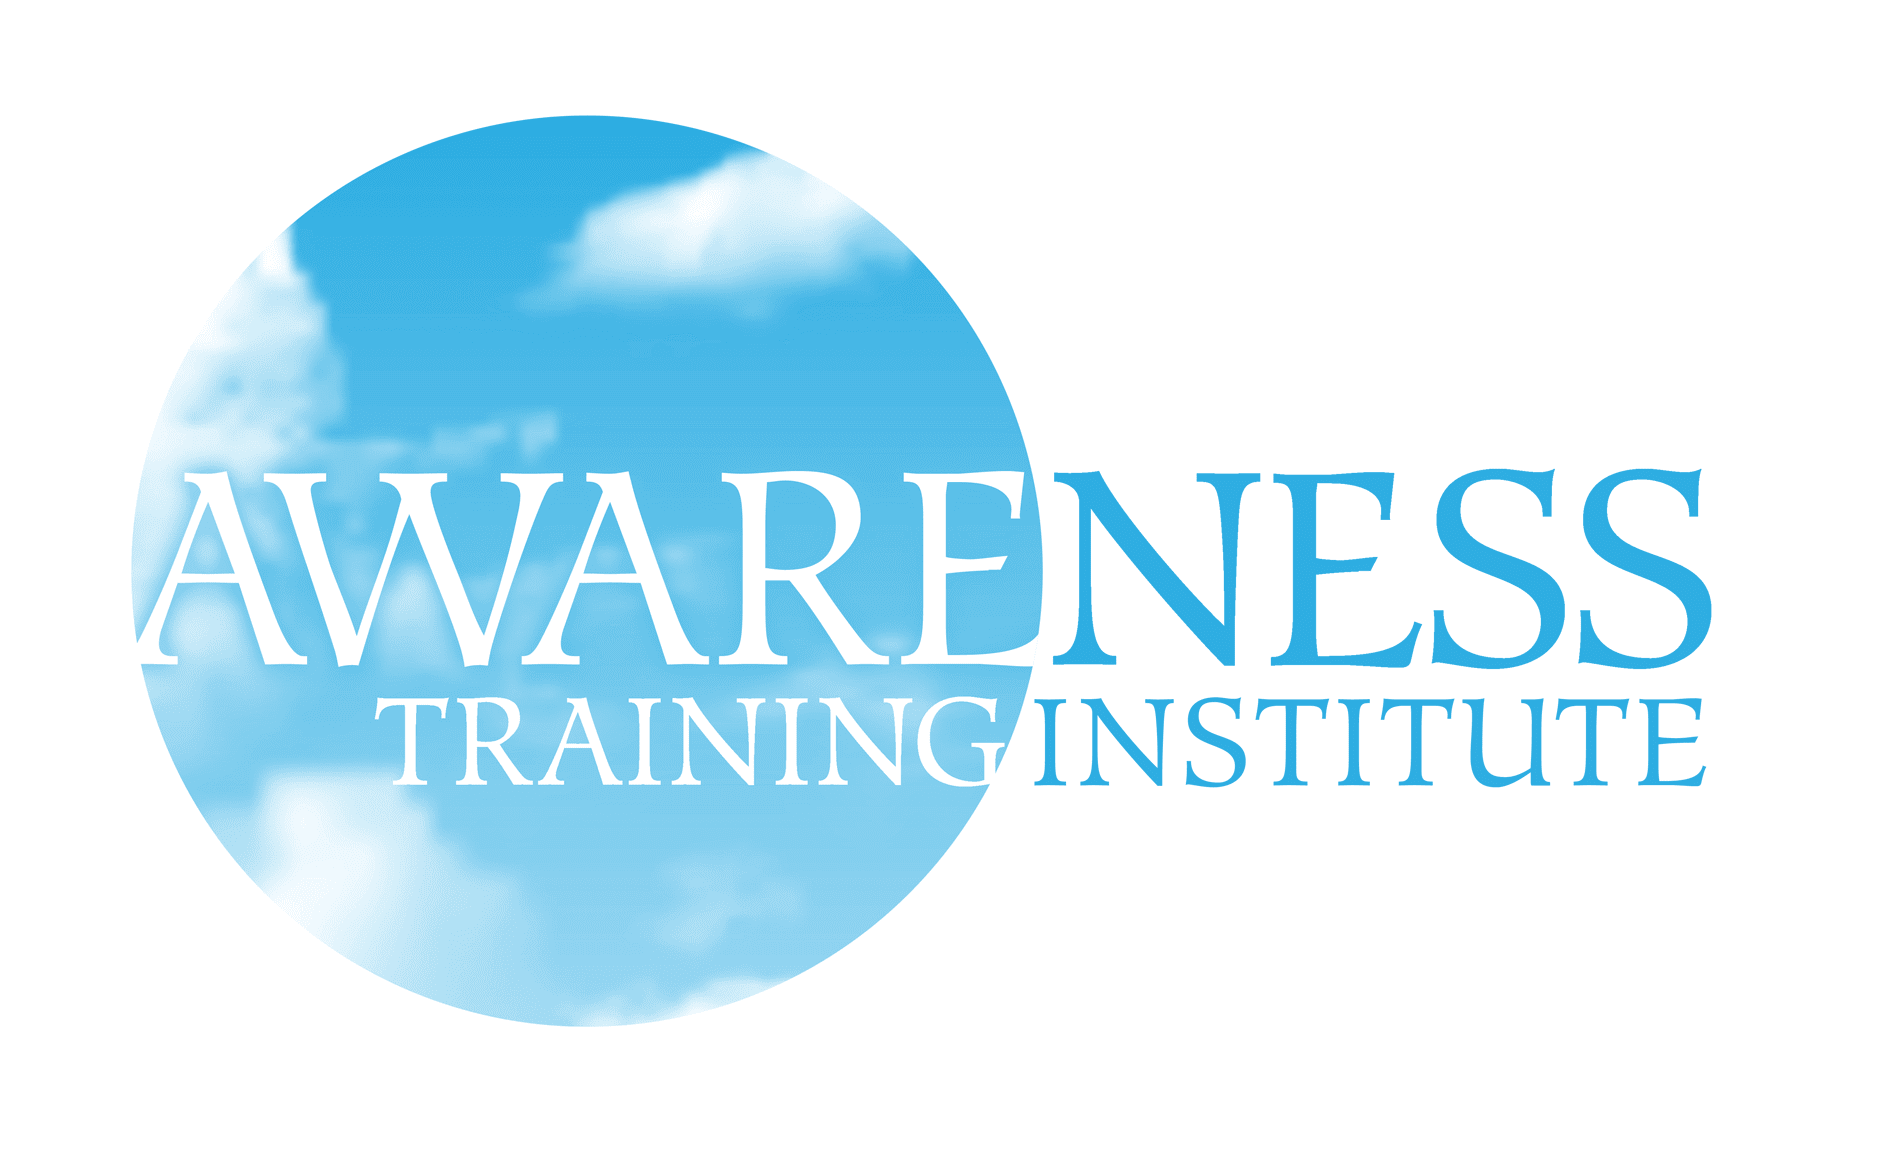 awareness training institute logo